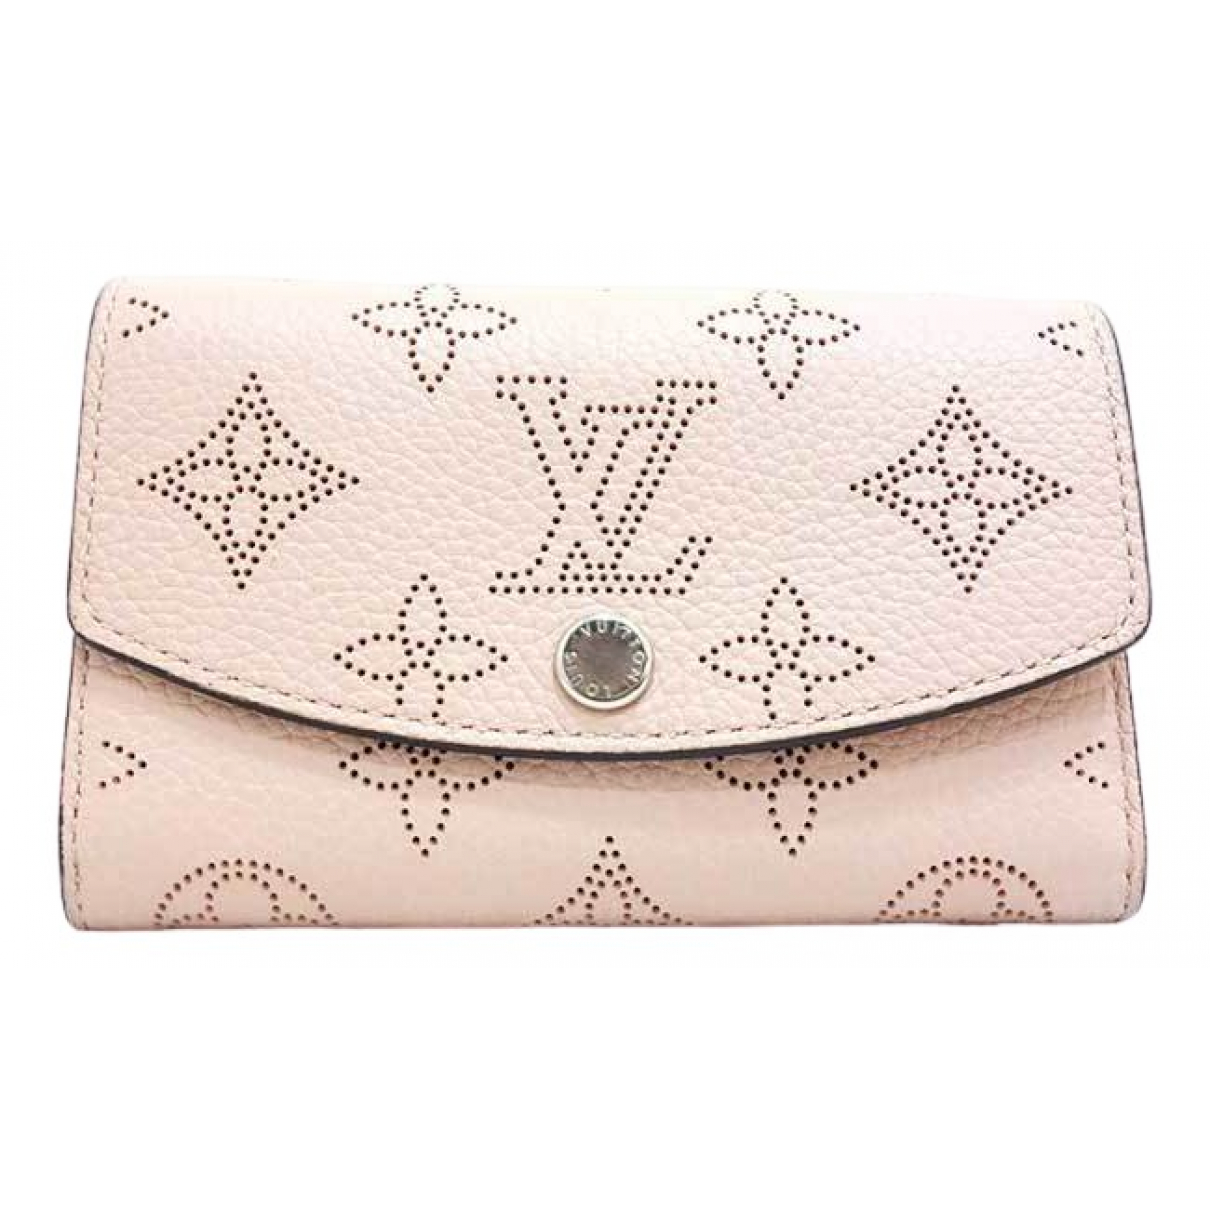 Louis Vuitton Mahina Pink Leather wallet for Women \N